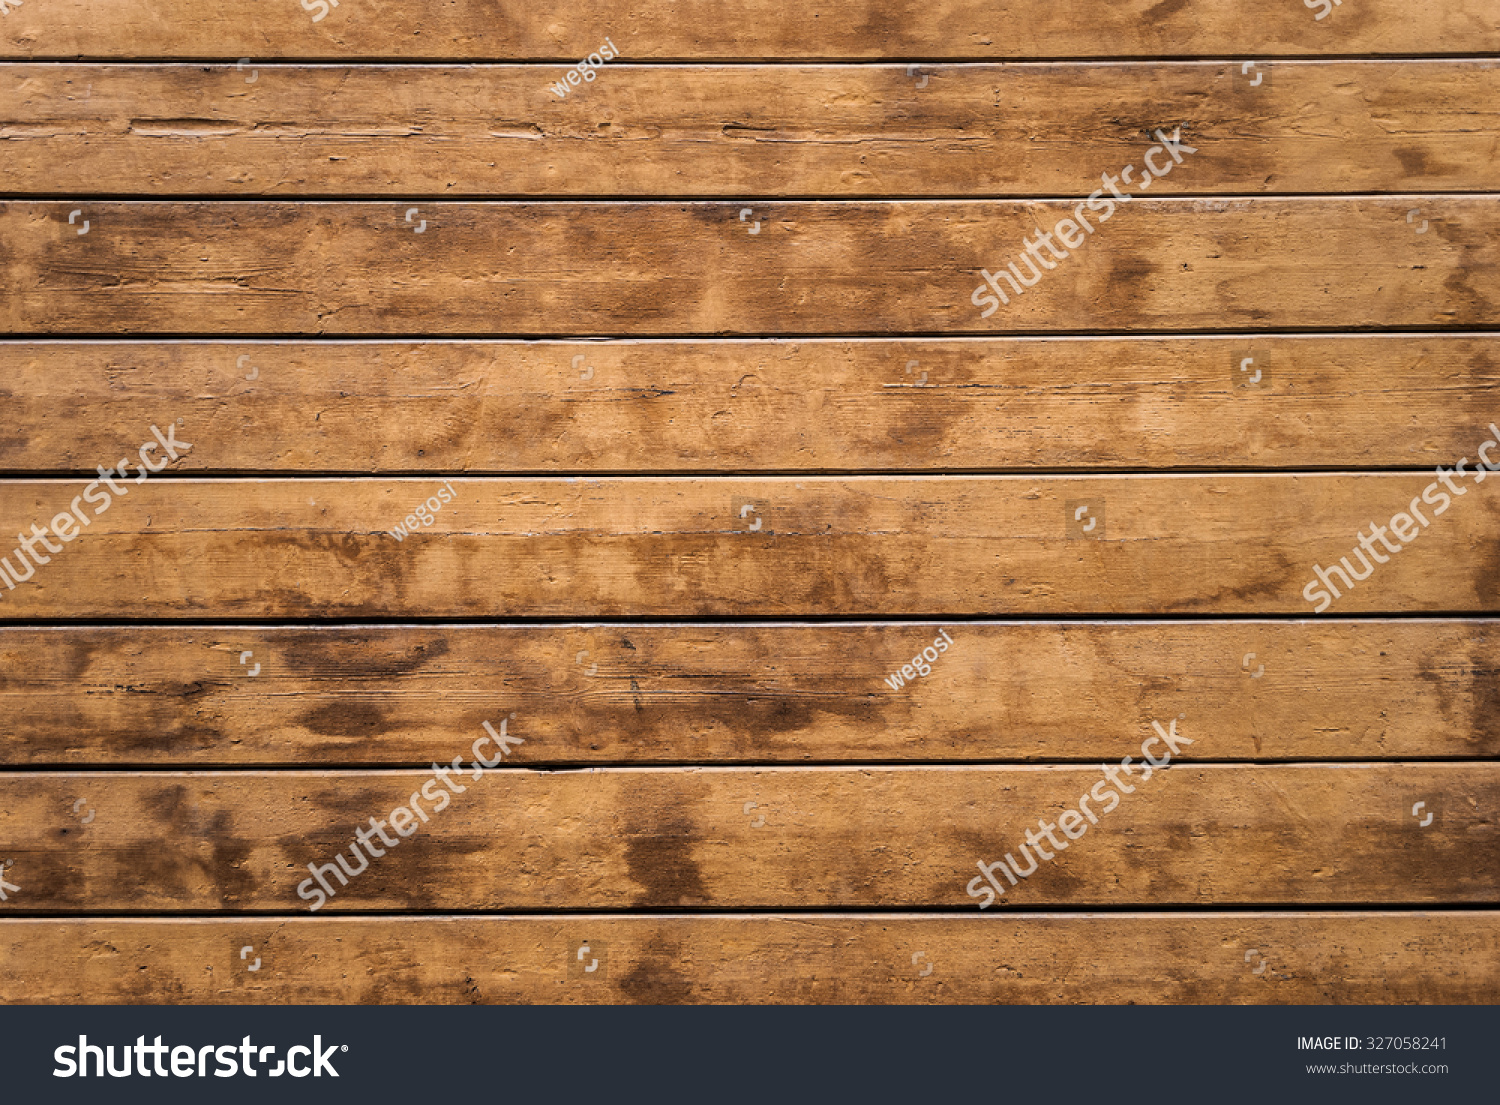 old plank wooden wall background dark stock photo. Black Bedroom Furniture Sets. Home Design Ideas